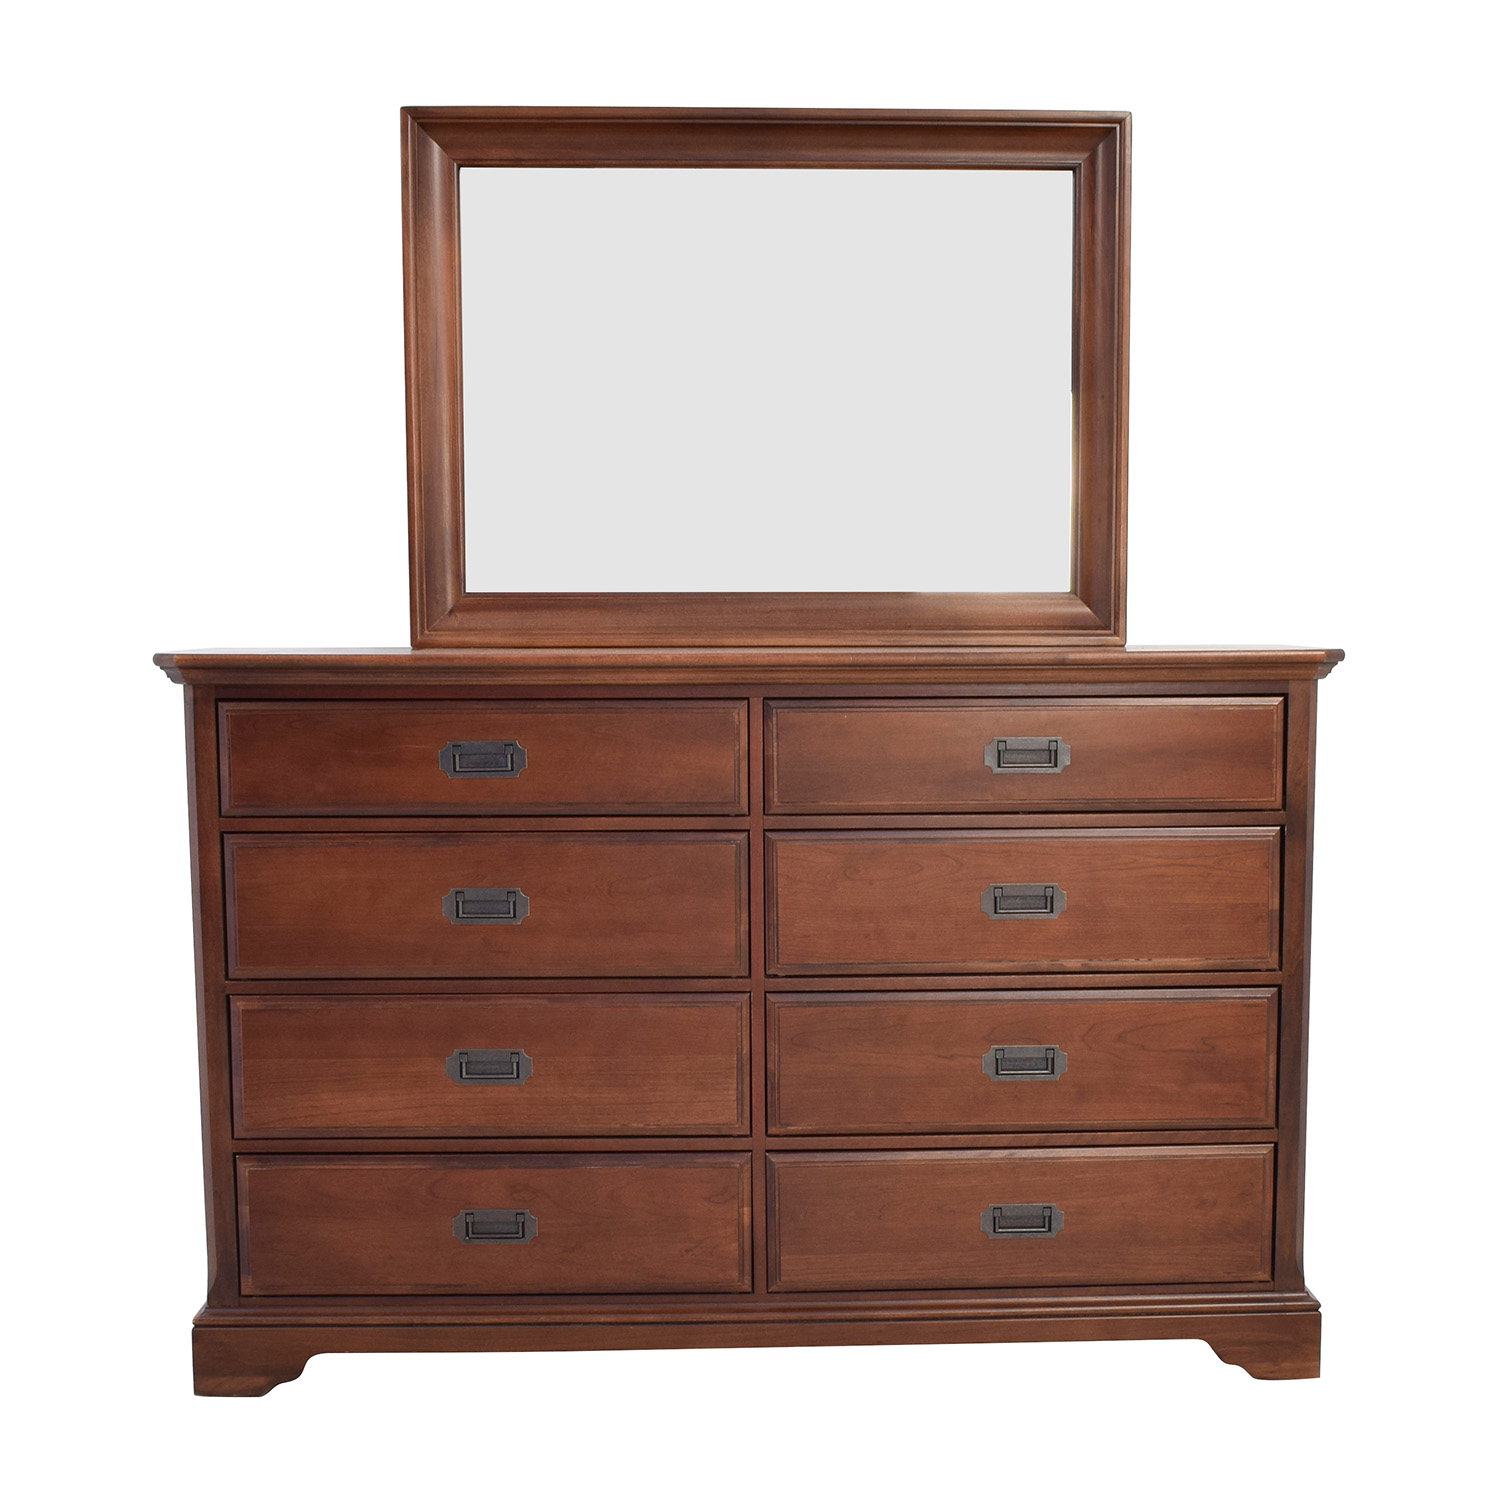 Vaughan Bassett Hardwood Dresser with Mirror second hand